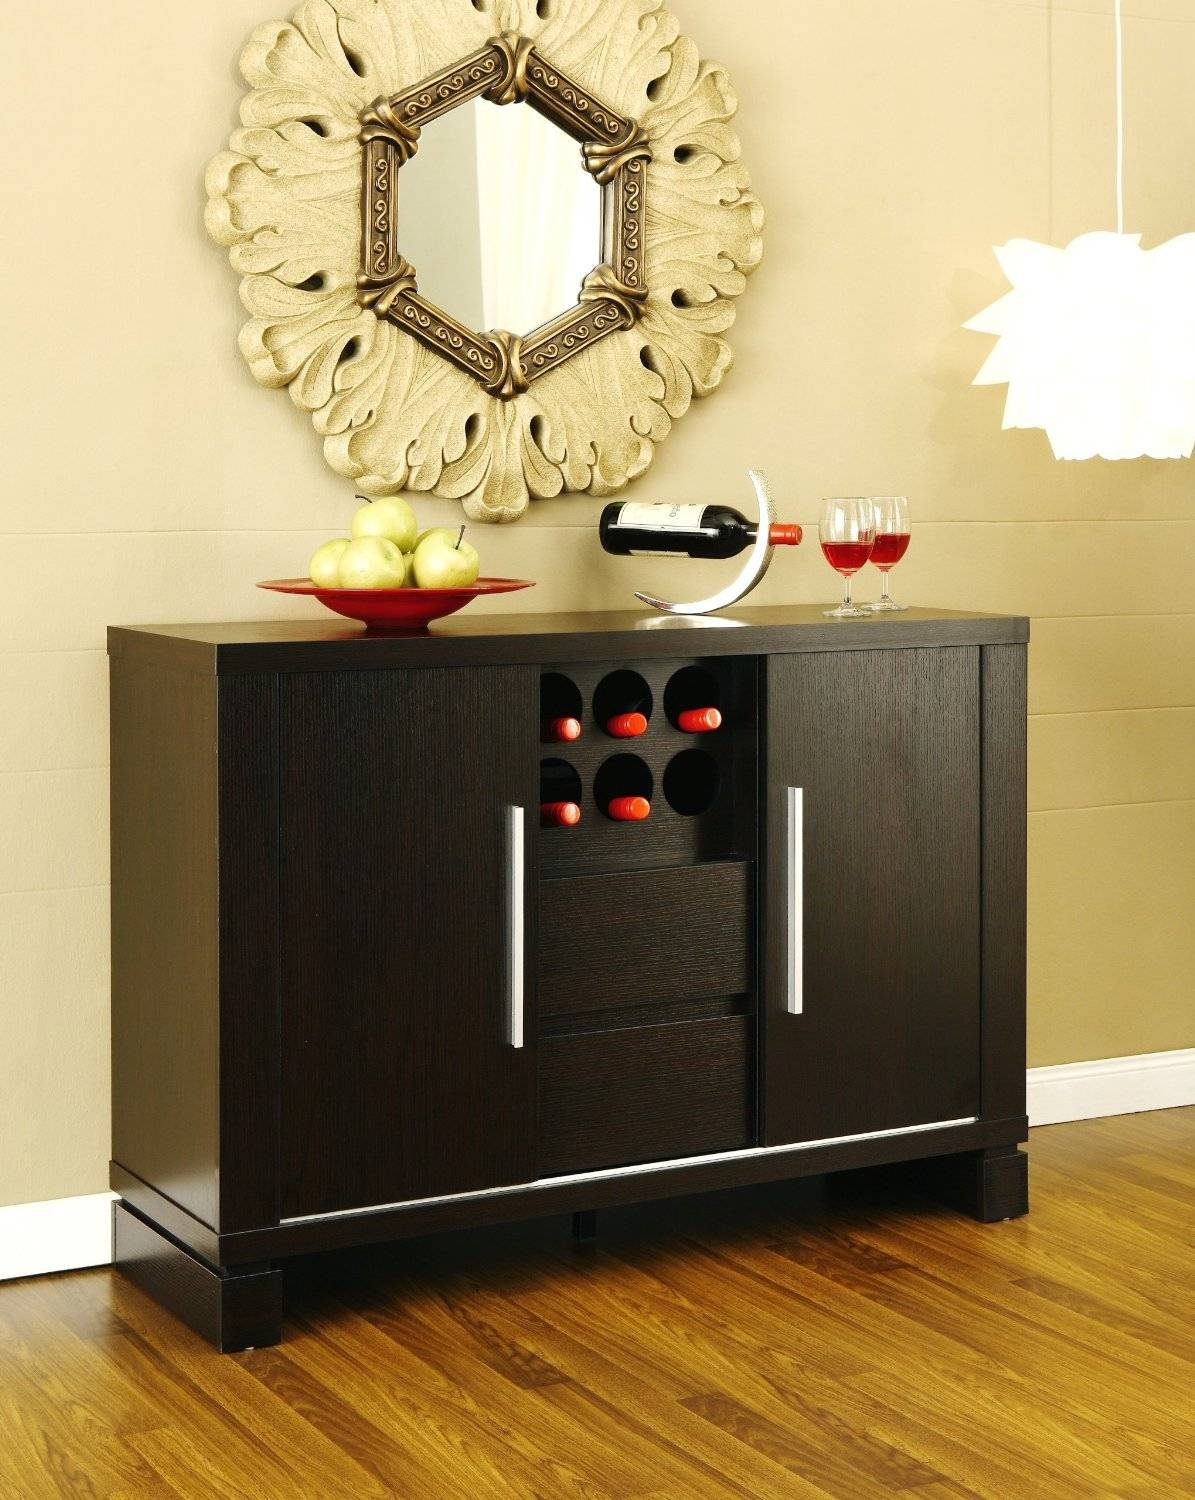 Contemporary Sideboard Cabinet — Optimizing Home Decor Ideas Inside Contemporary Sideboard Cabinet (View 6 of 20)